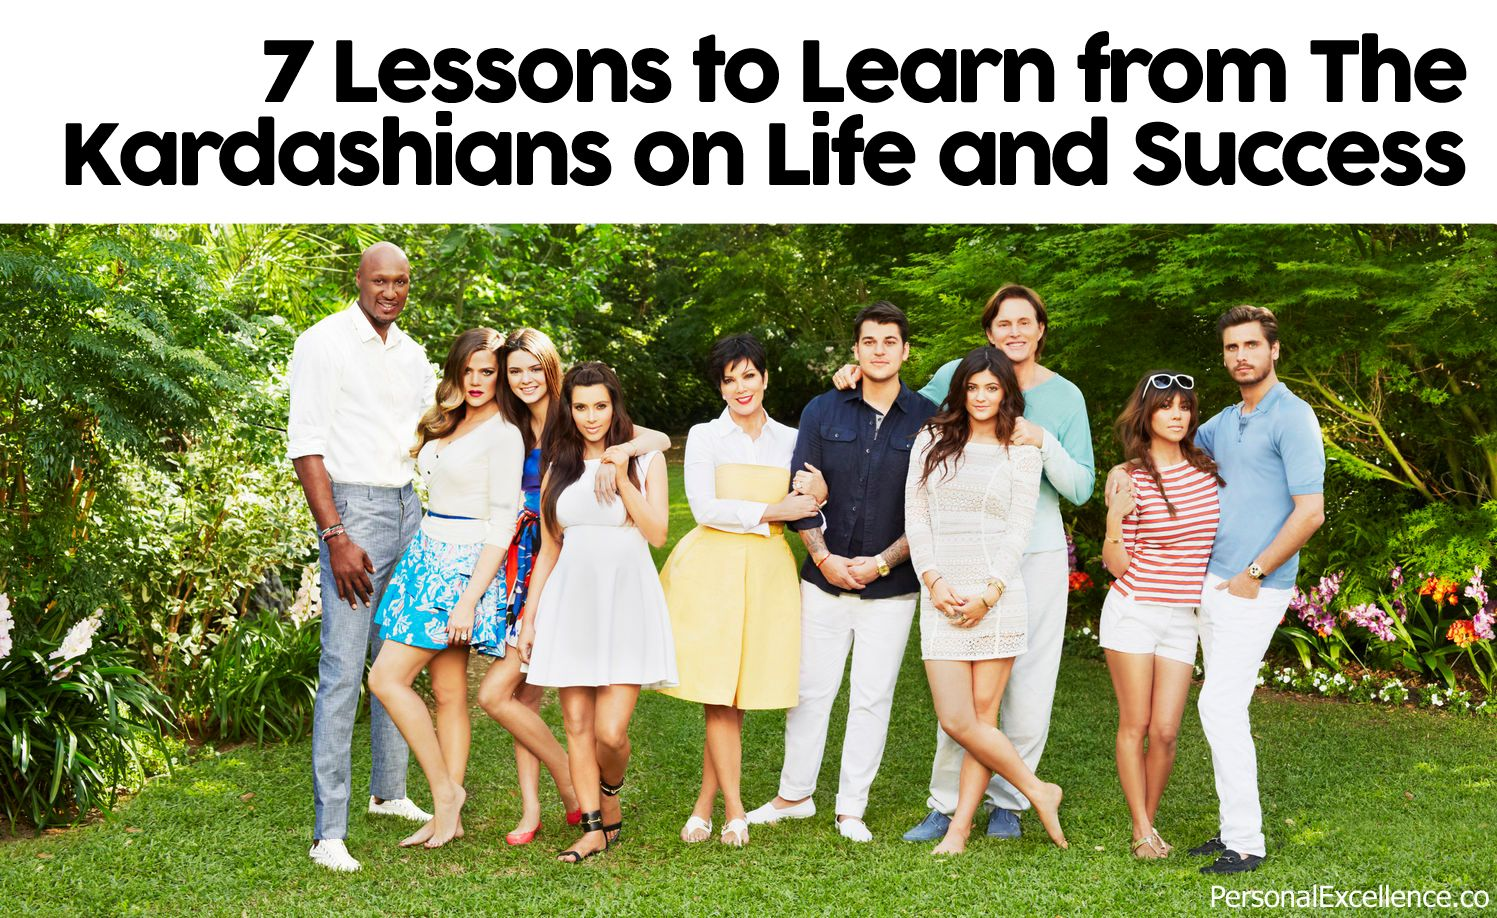 Some of you must be wondering what I'm up to, writing about the Kardashians. Given the Kardashians' huge successes, I think there is something we can learn from them. Contrary to what some may think, I actually do not think that the Kardashians are stupid; I think they are everyday people had who found sudden fame and continue to remain famous because... Read more: http://personalexcellence.co/blog/kardashians/ #life #lessons #lifelessons #kardashians #kimkardashian #fame #success